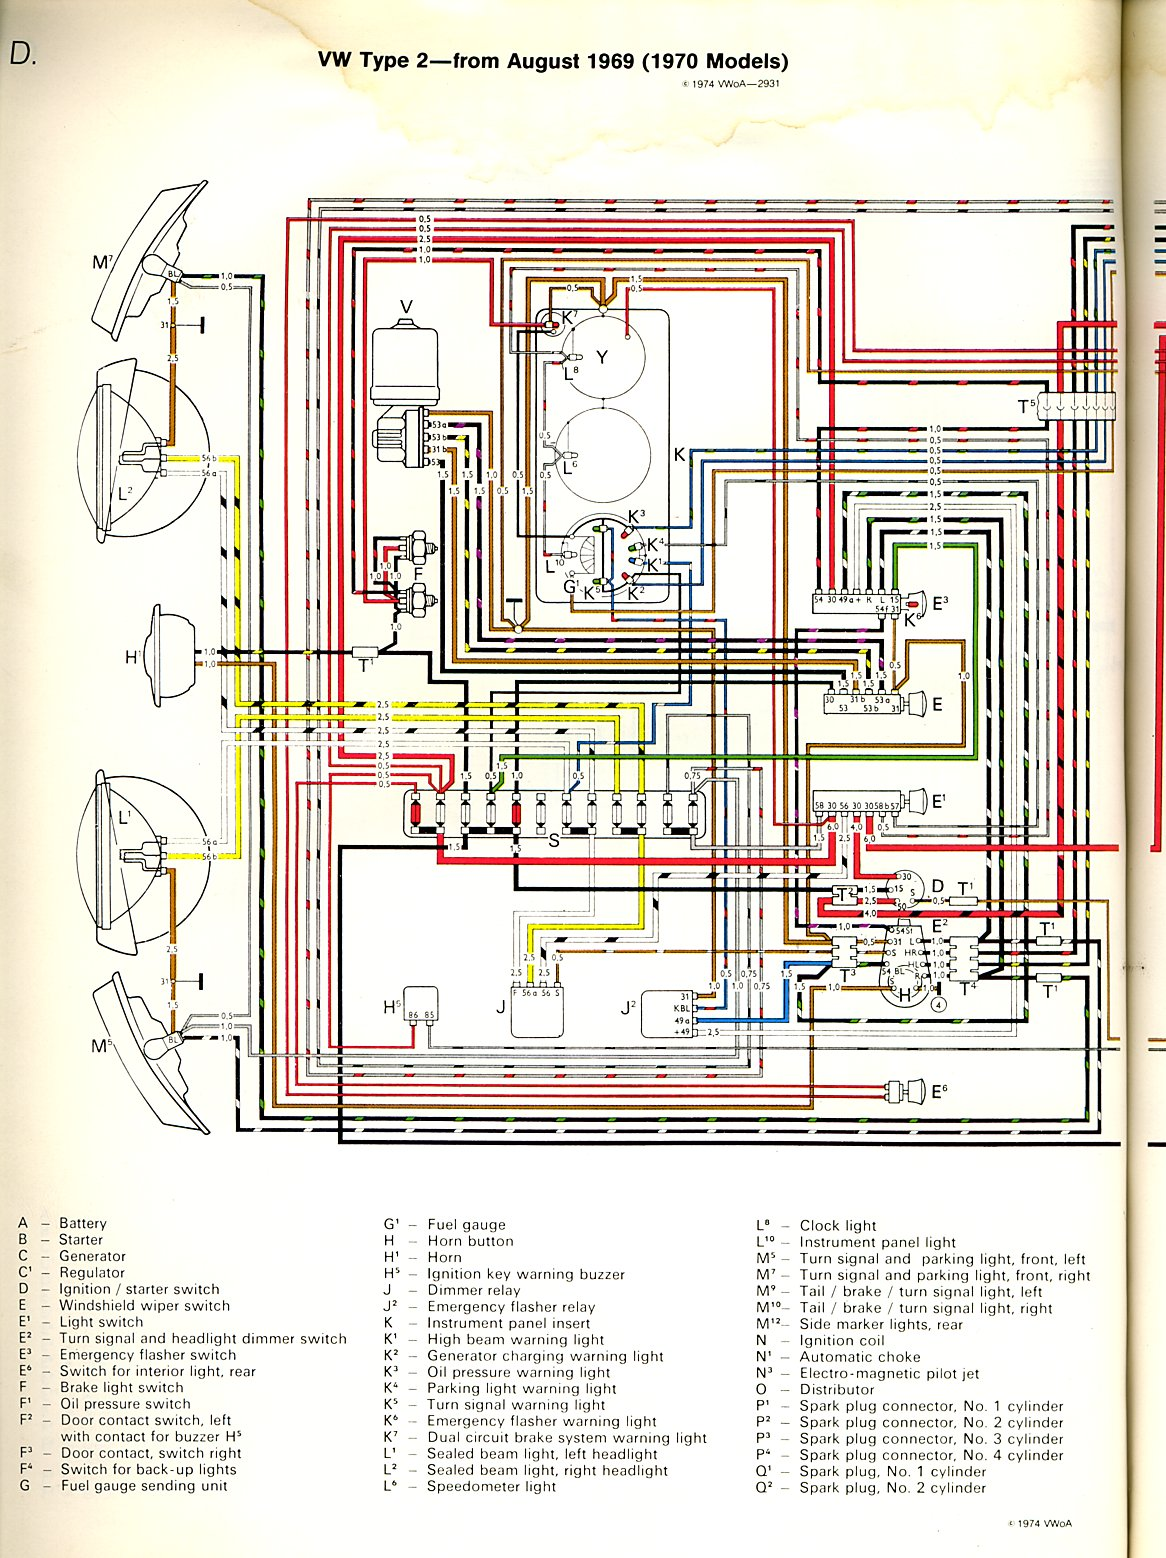 vw bus wiring diagrams detailed schematics diagram rh keyplusrubber com  1977 Volkswagen Beetle Wiring Diagram 1966